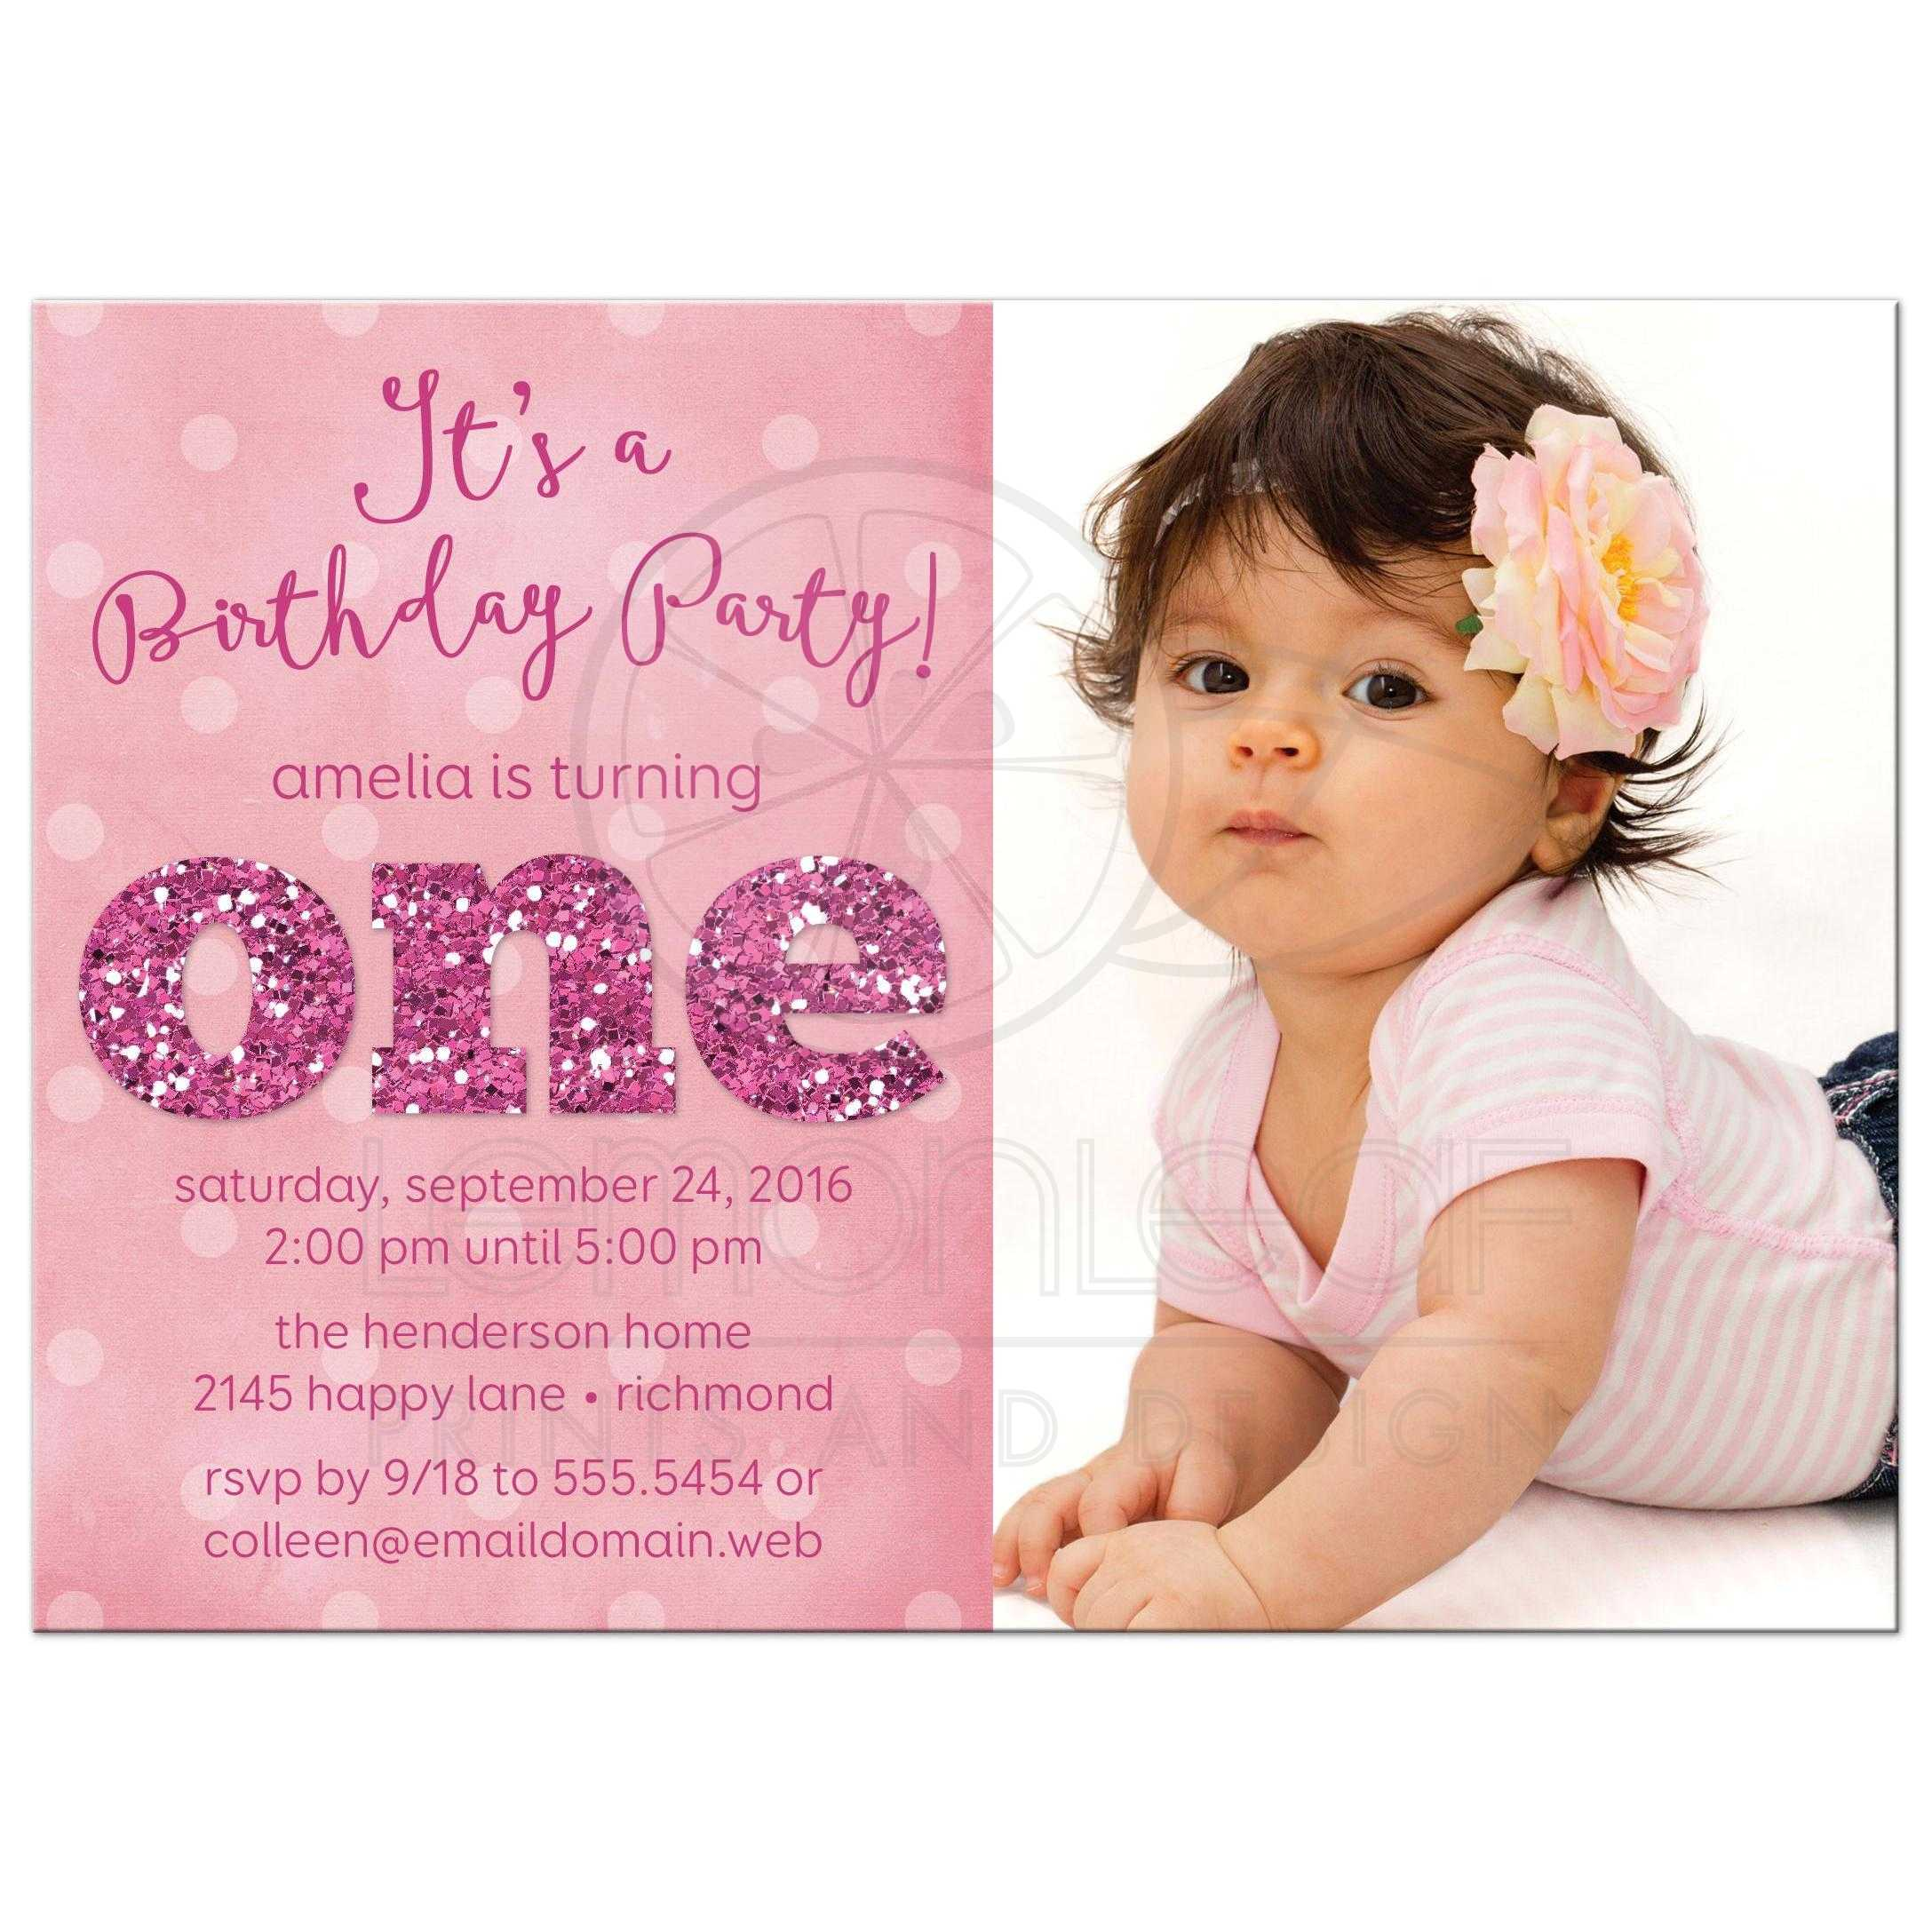 1st birthday invitation ideas ; 32349_Rectangle_sparkle_one_first_birthday_party_invitation-pink_by_the_spotted_olive-llp